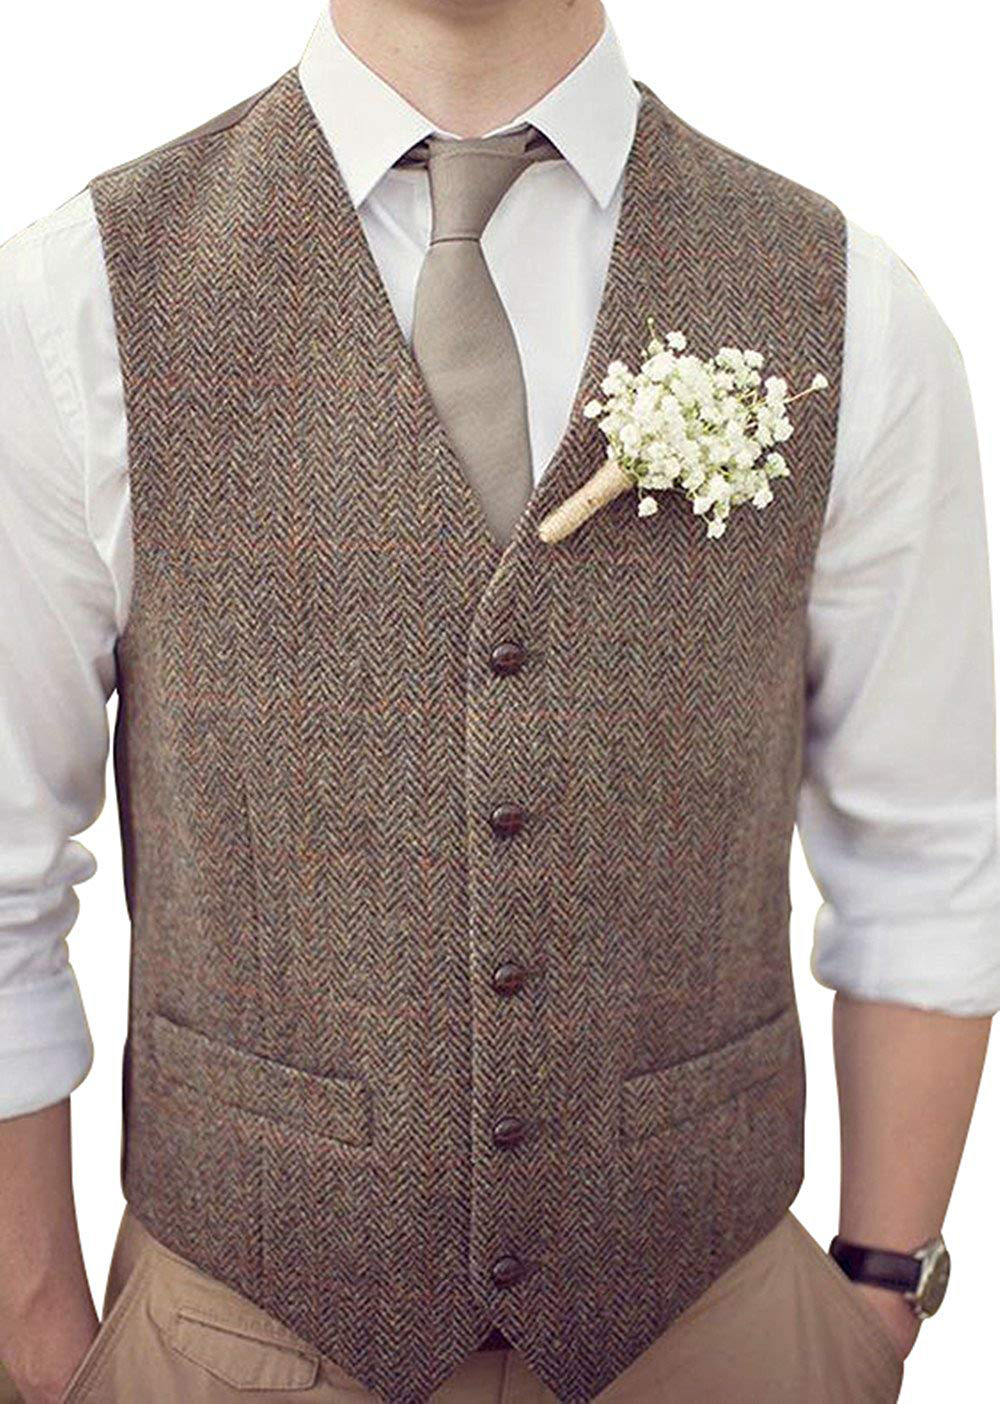 biggest selection great variety models best service US $20.39 15% OFF|New Brown Mens Casual Suit Vests Wool Herringbone Tweed  Waistcoat Slim Sleeveless Suit Jacket Groomsmen vest for Wedding 2019-in ...